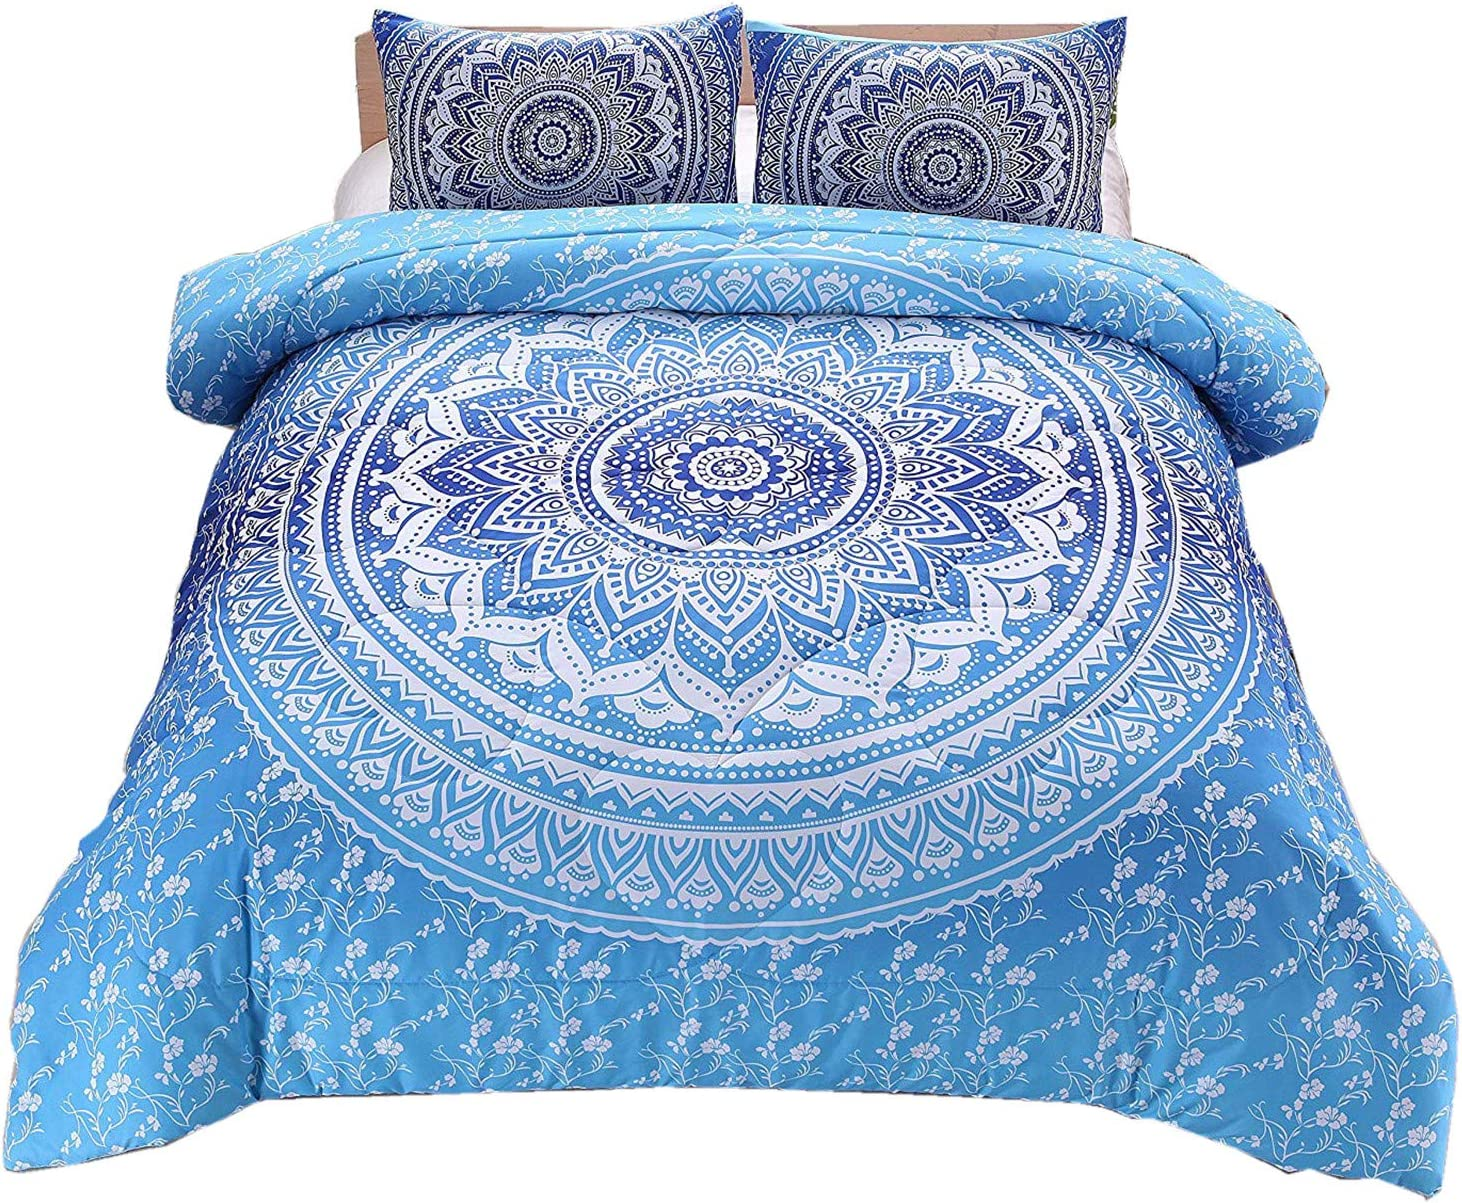 Meeting Story 3Pcs Mandala Bohemian Moonlight Bedding Bedspread Comforter Set (Blue, Queen)